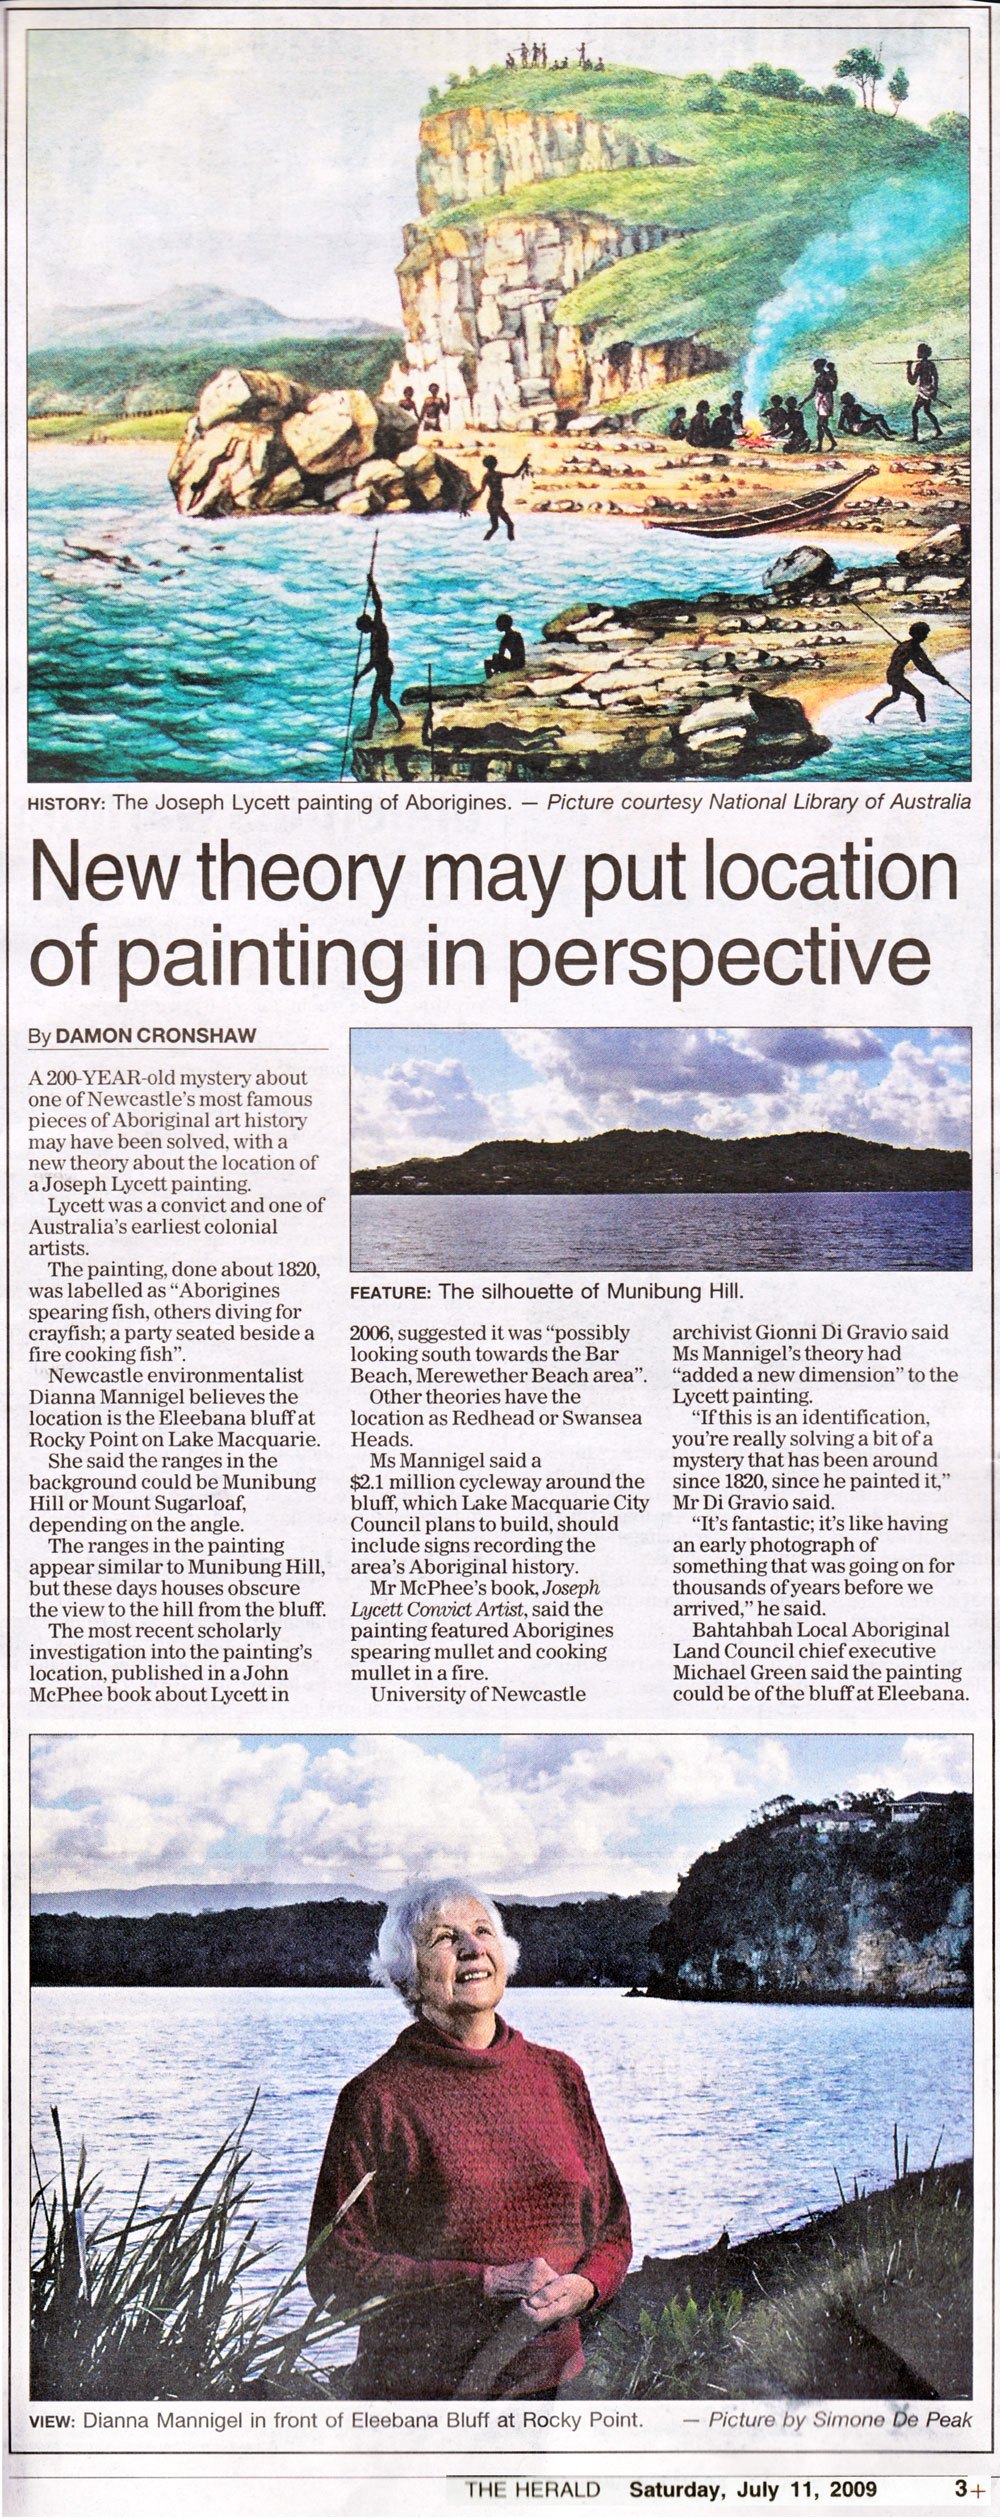 New Theory may put location of painting in perspective by Damon Cronshaw